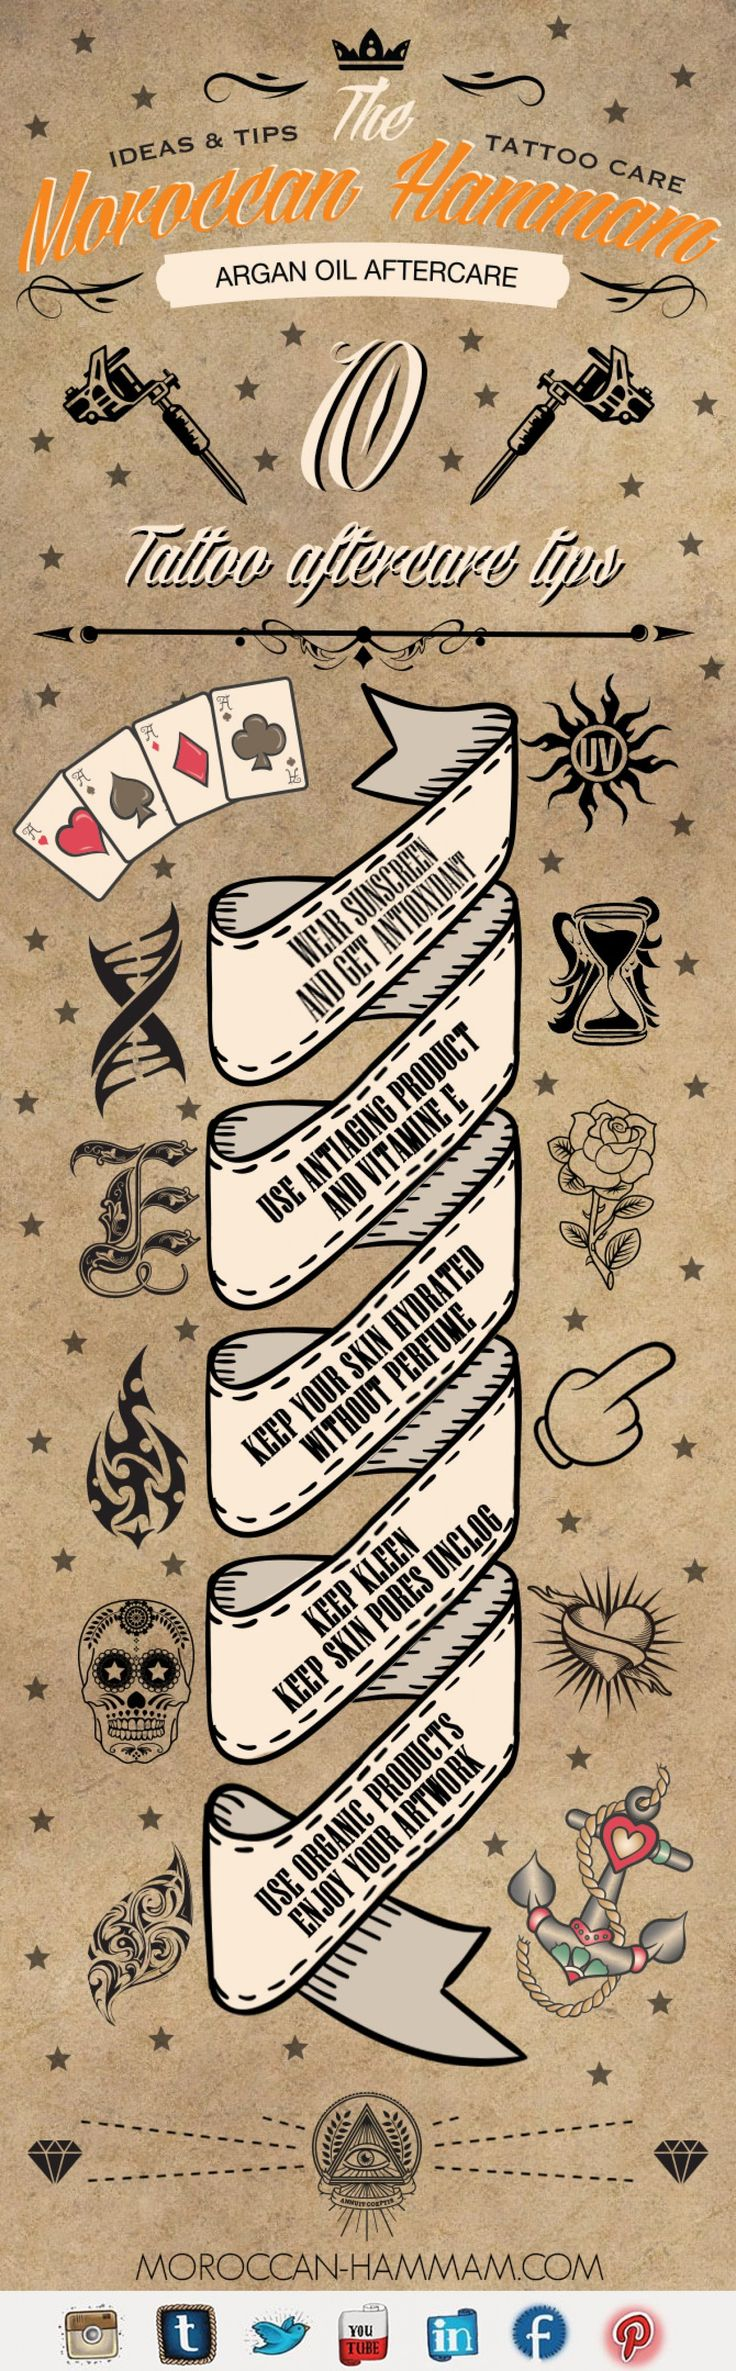 10 Tattoo Aftercare Tips Infographic